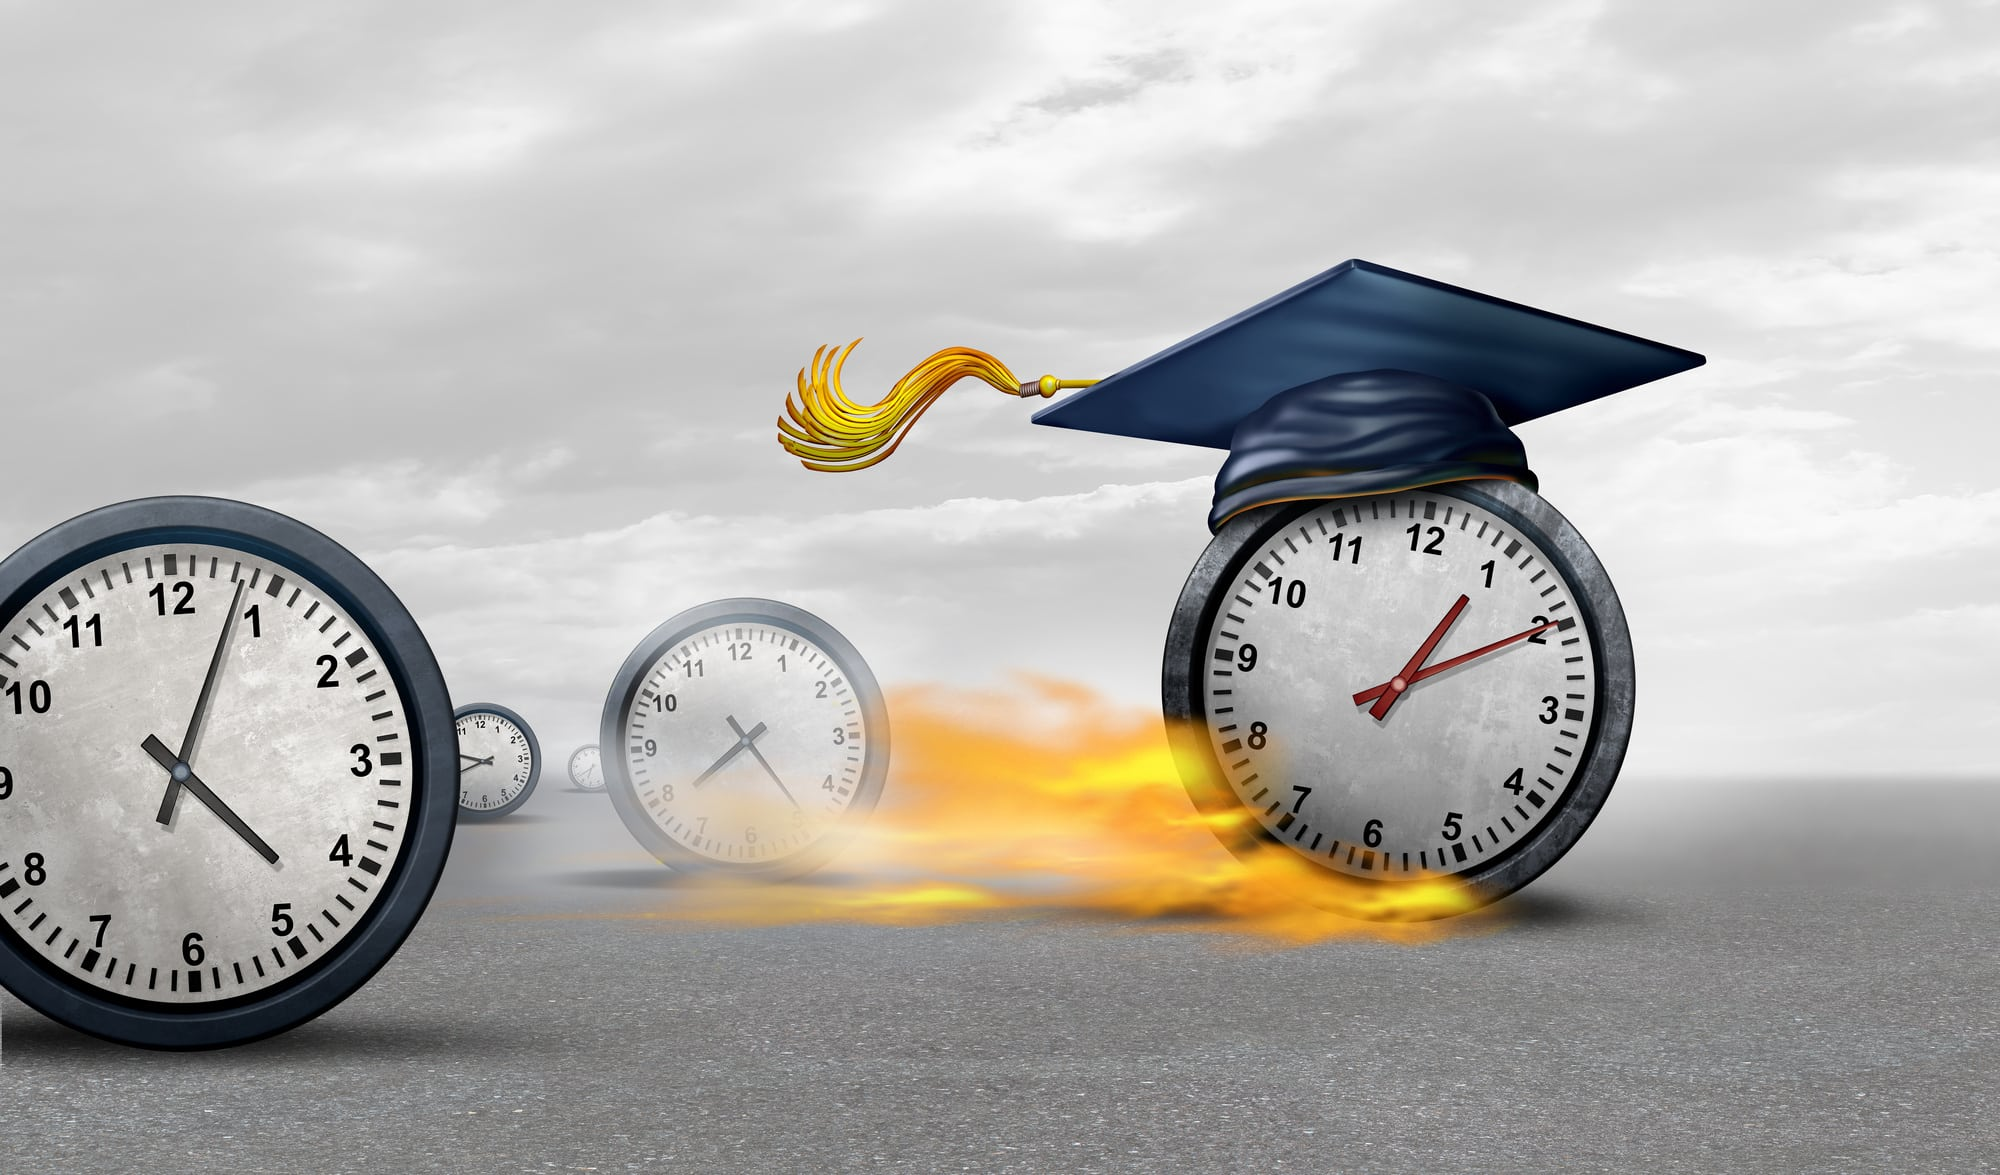 Accelerated learning - 2 clocks in a race